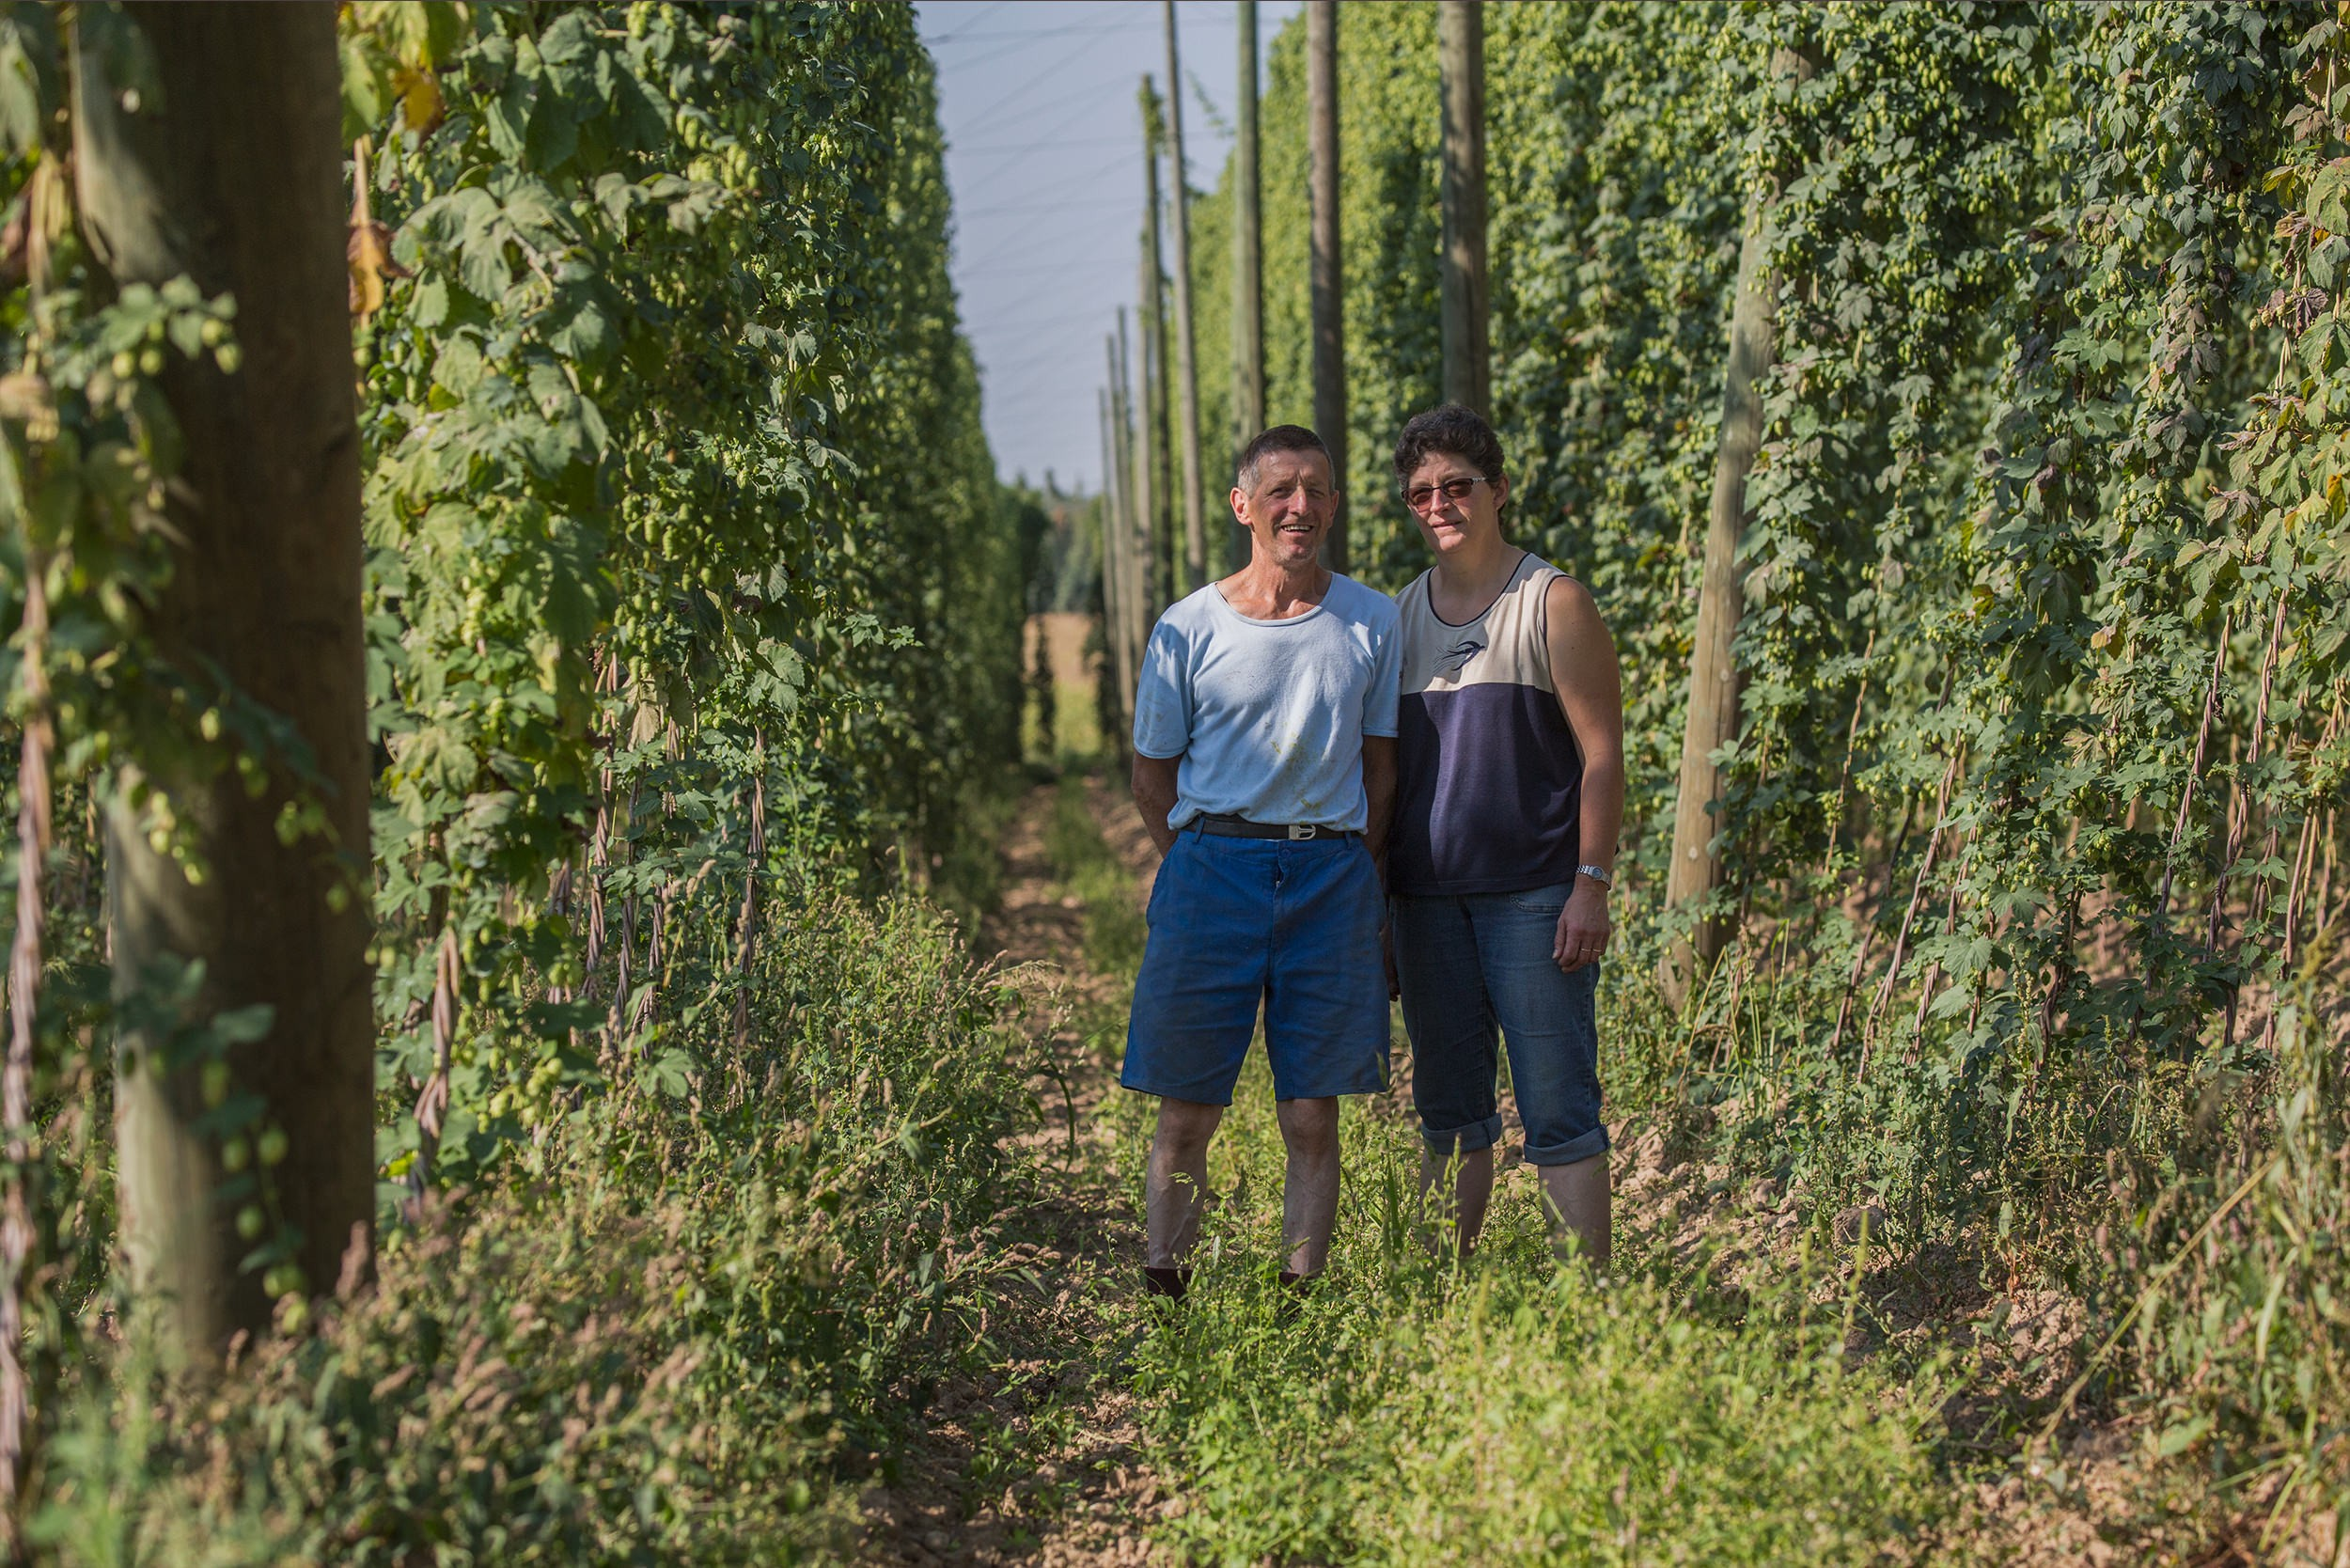 Le houblon d'Alsace cultive l'innovation et la tradition, naturellement